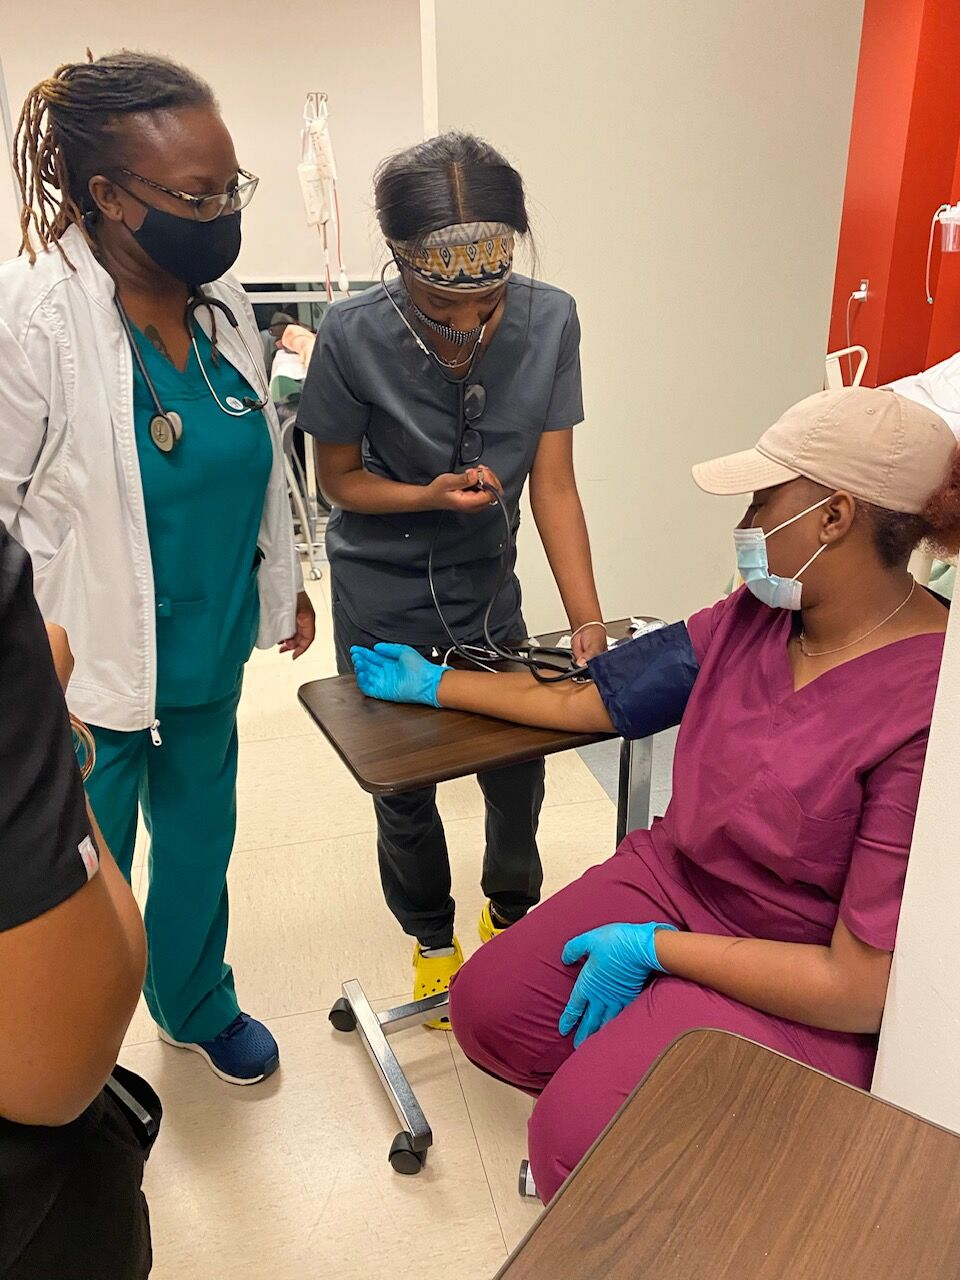 MNPS student learns to take blood pressure